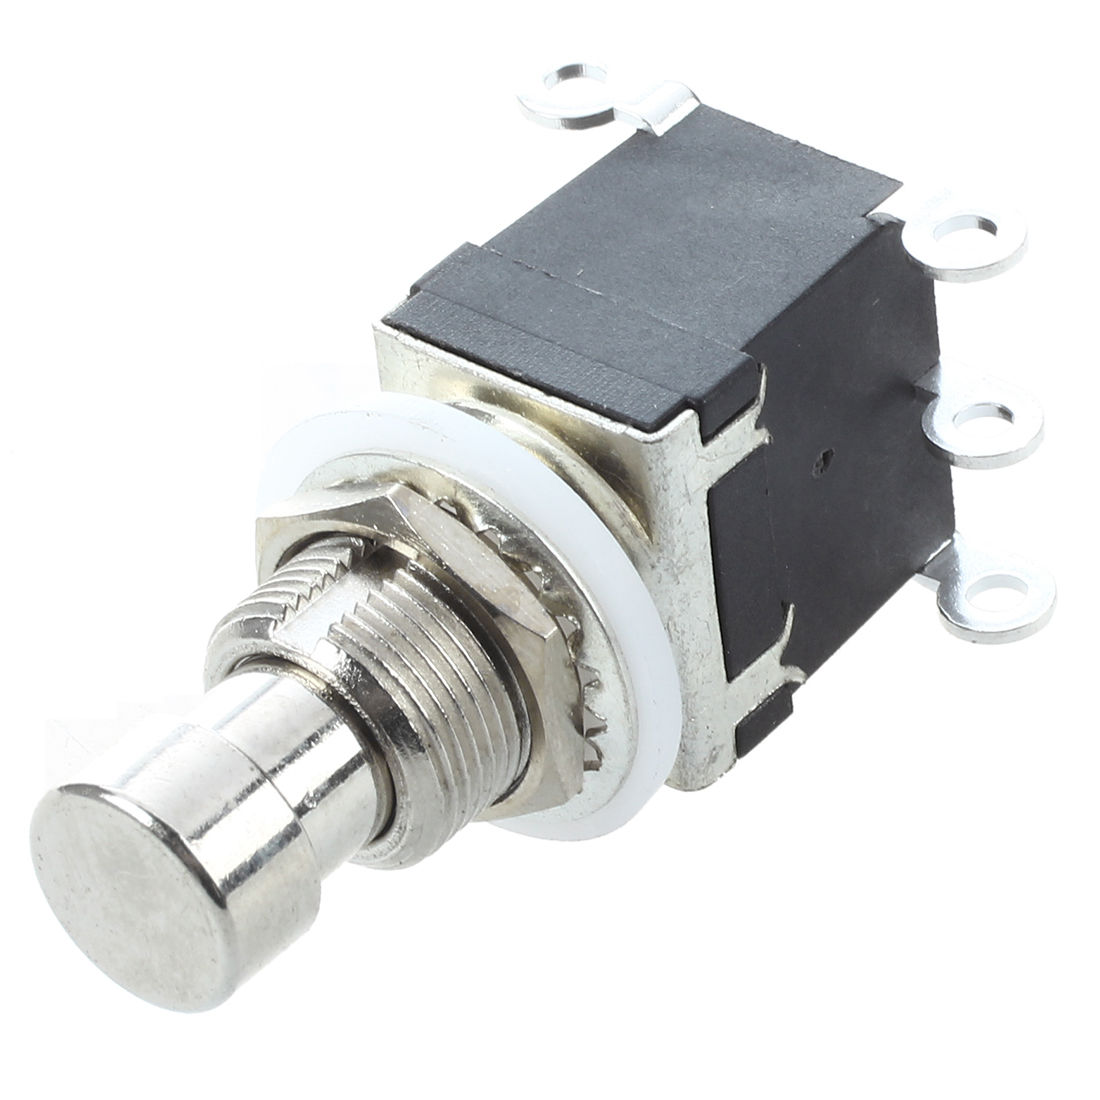 aliexpress com buy 6pins dpdt momentary stomp foot switch for guitar ac 250v 2a 125v 4a from reliable switch for guitar suppliers on decorative lifestyle  [ 1100 x 1100 Pixel ]